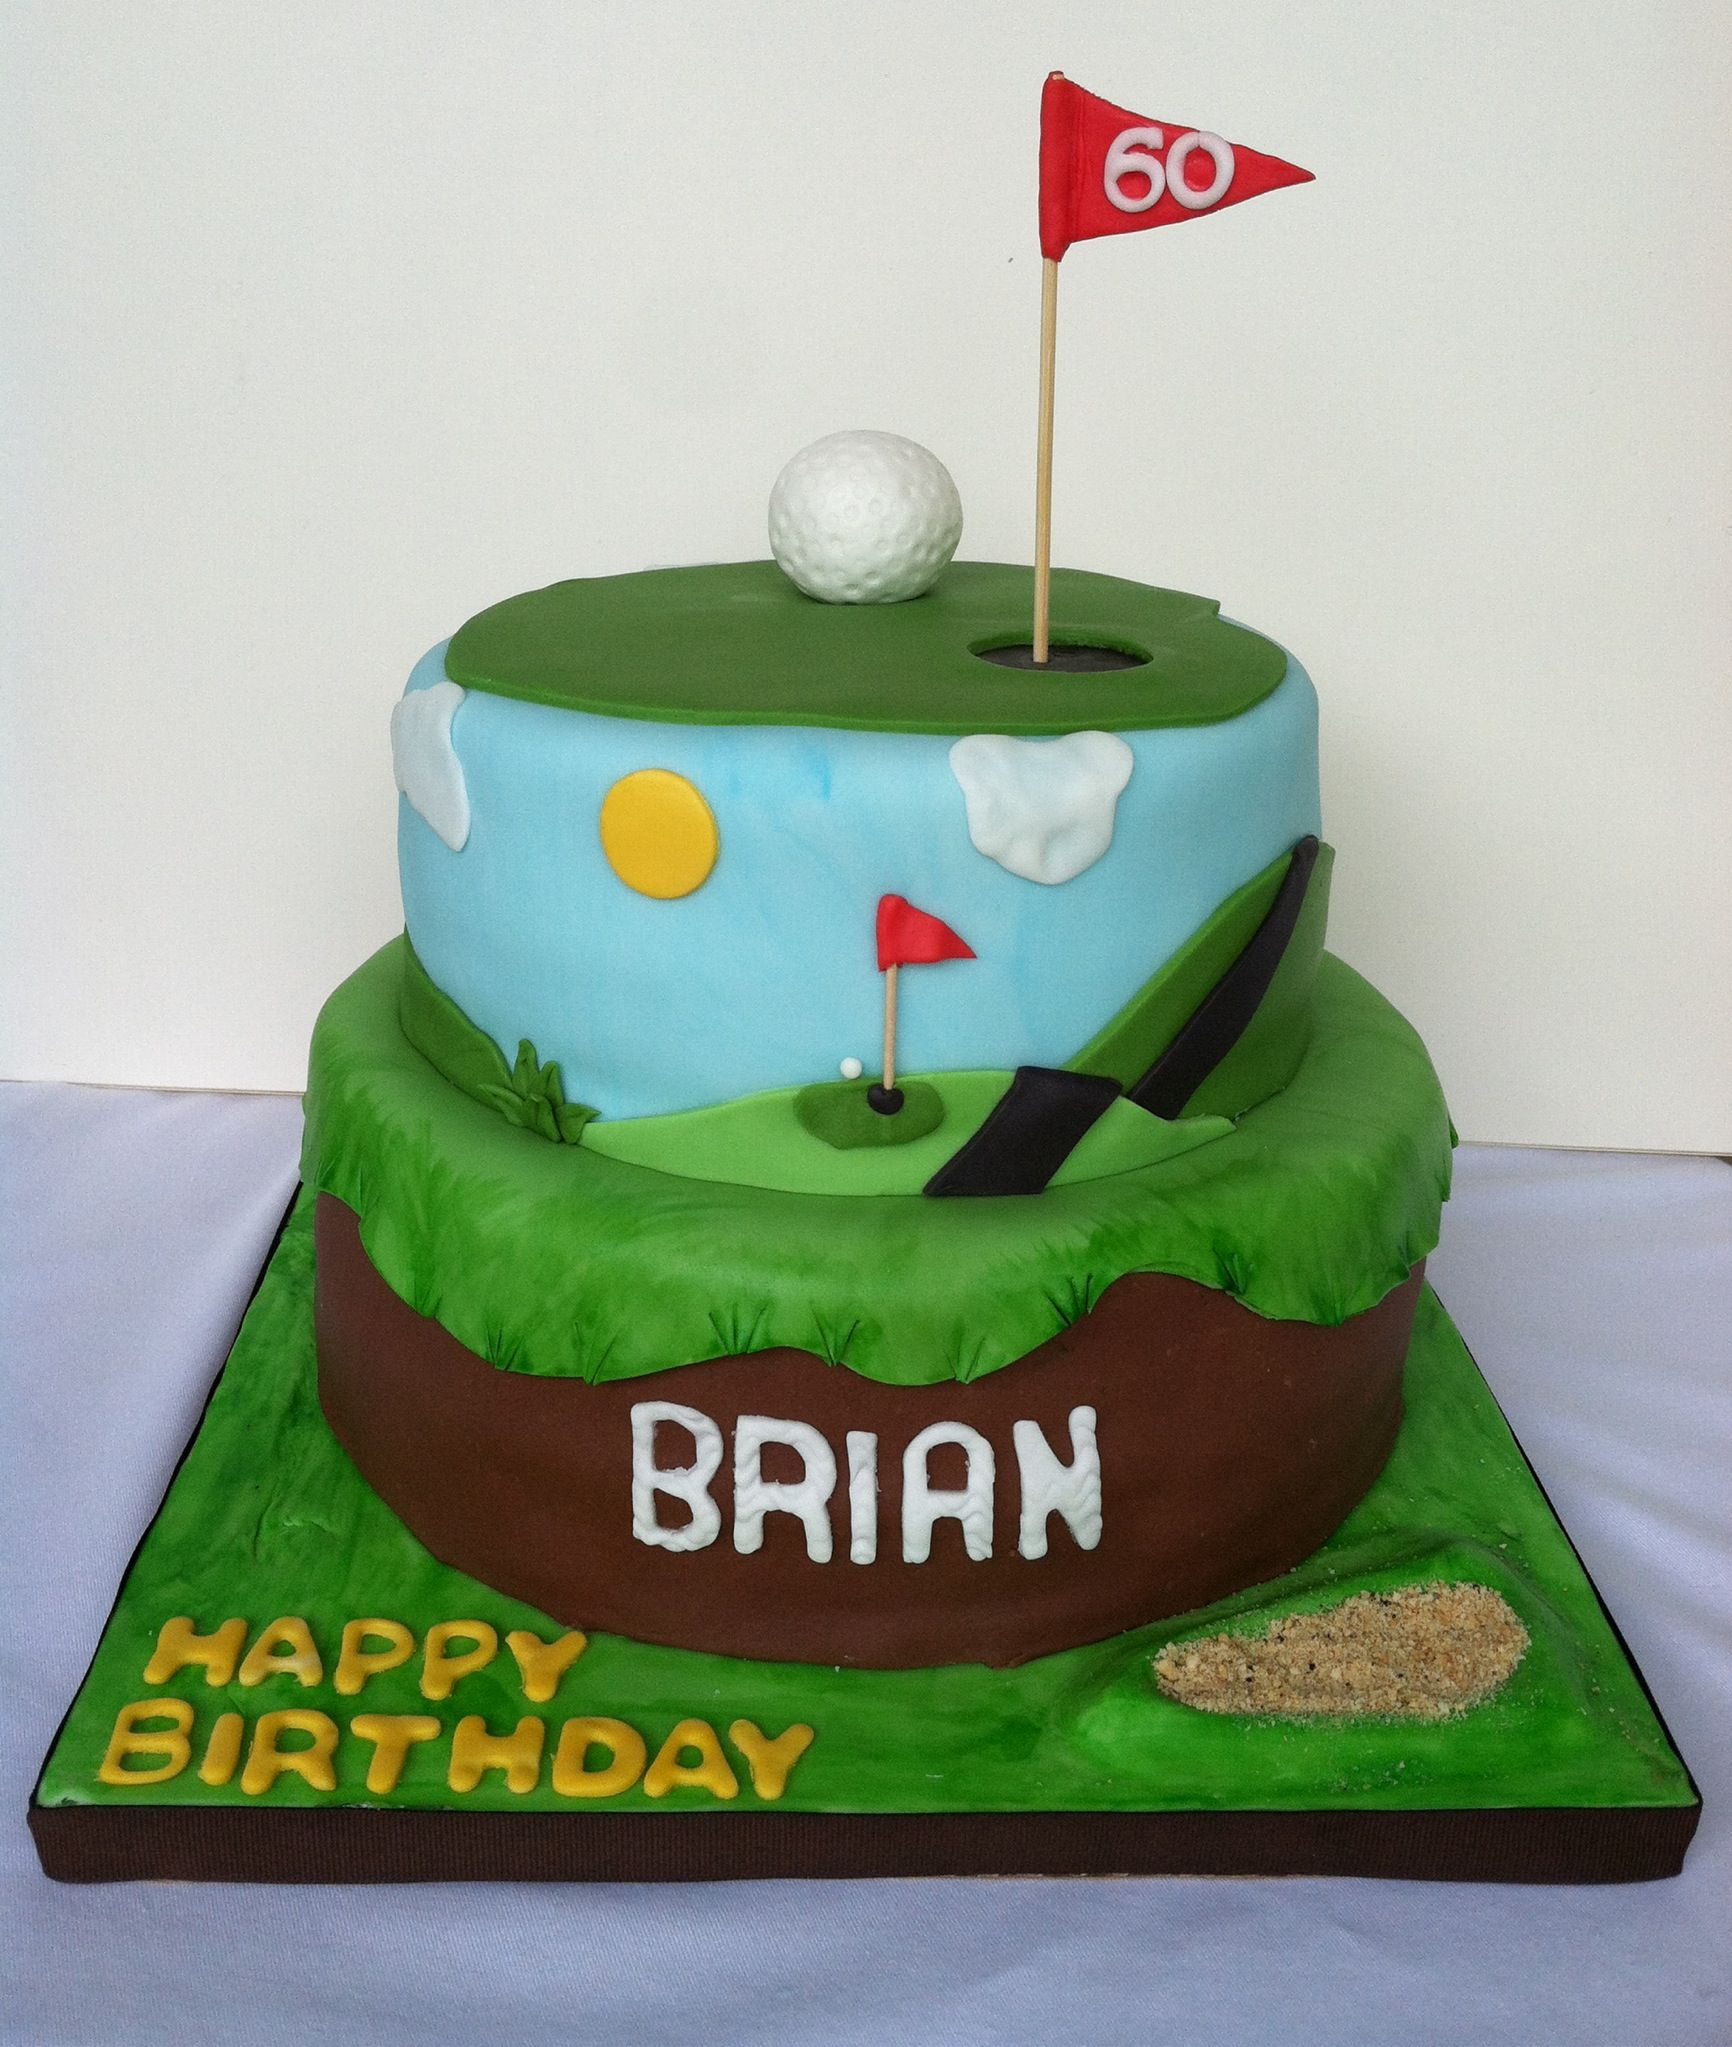 Happy 60th Birthday Golf Theme Chocolate Cake